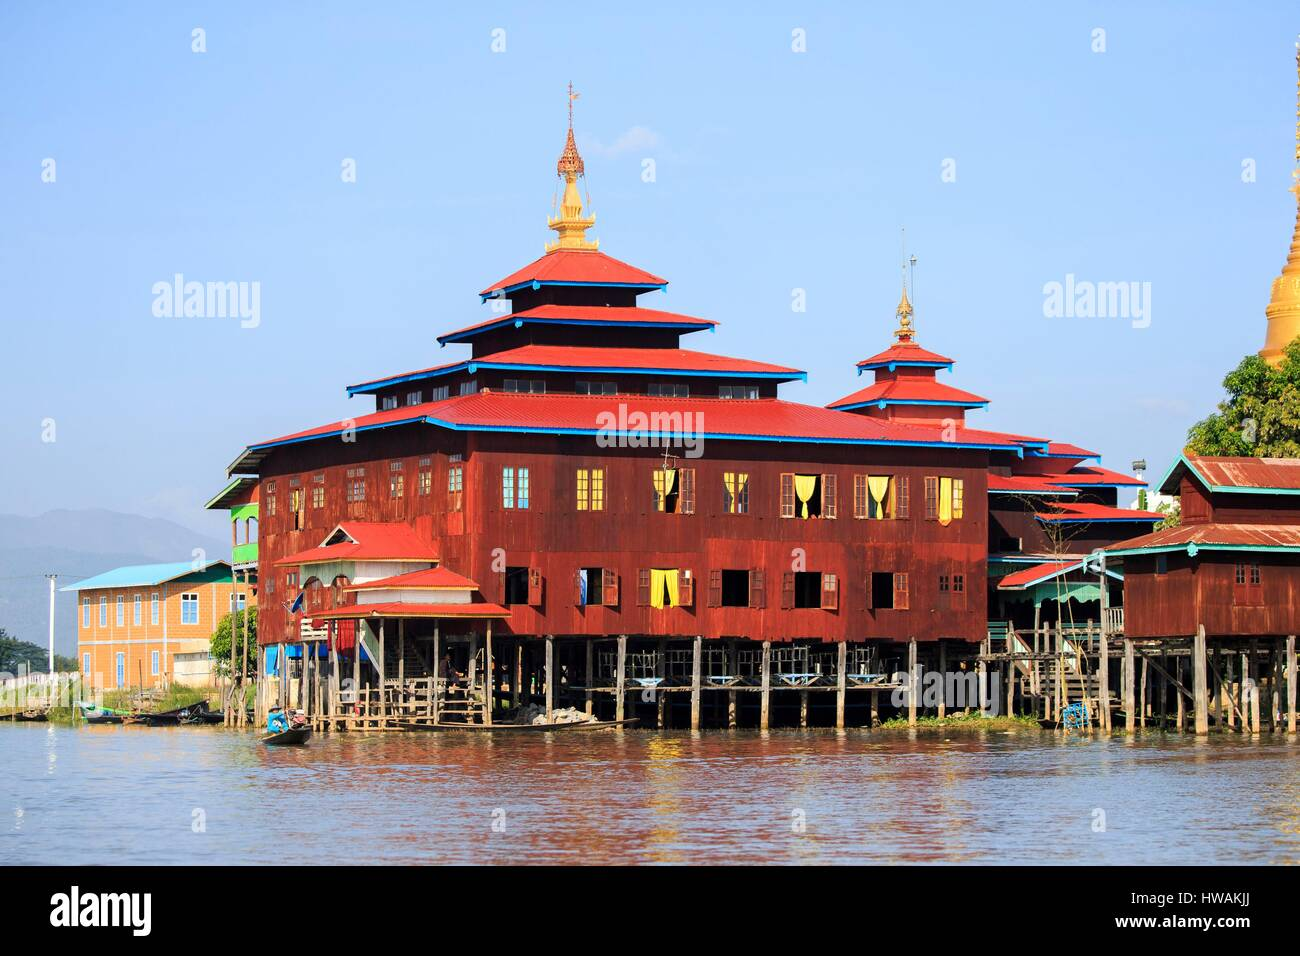 Myanmar, Shan State, Sagar, Inle lake, village, floating village - Stock Image